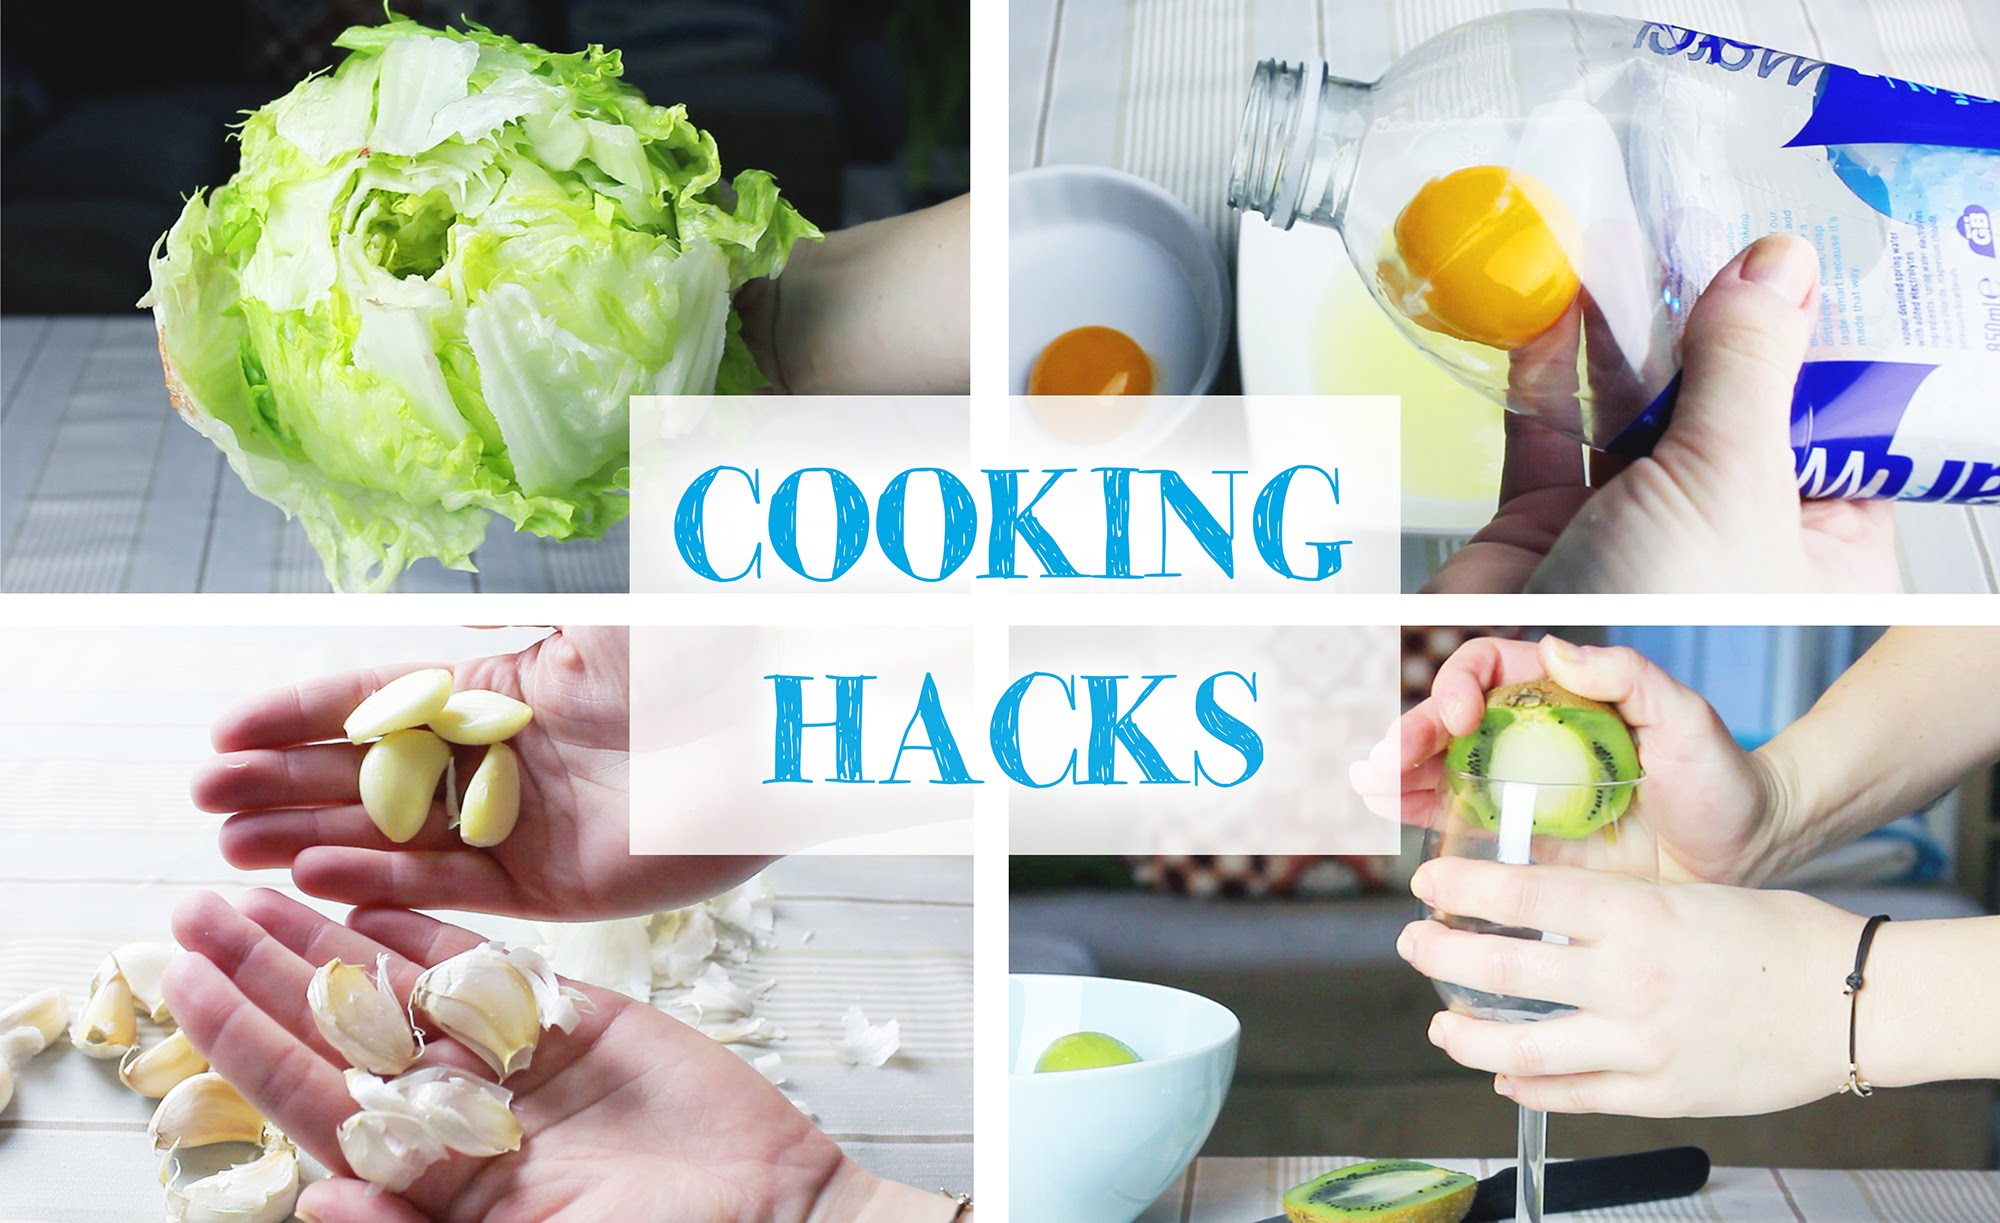 LIFE HACK TUESDAY: COOKING EDITION!